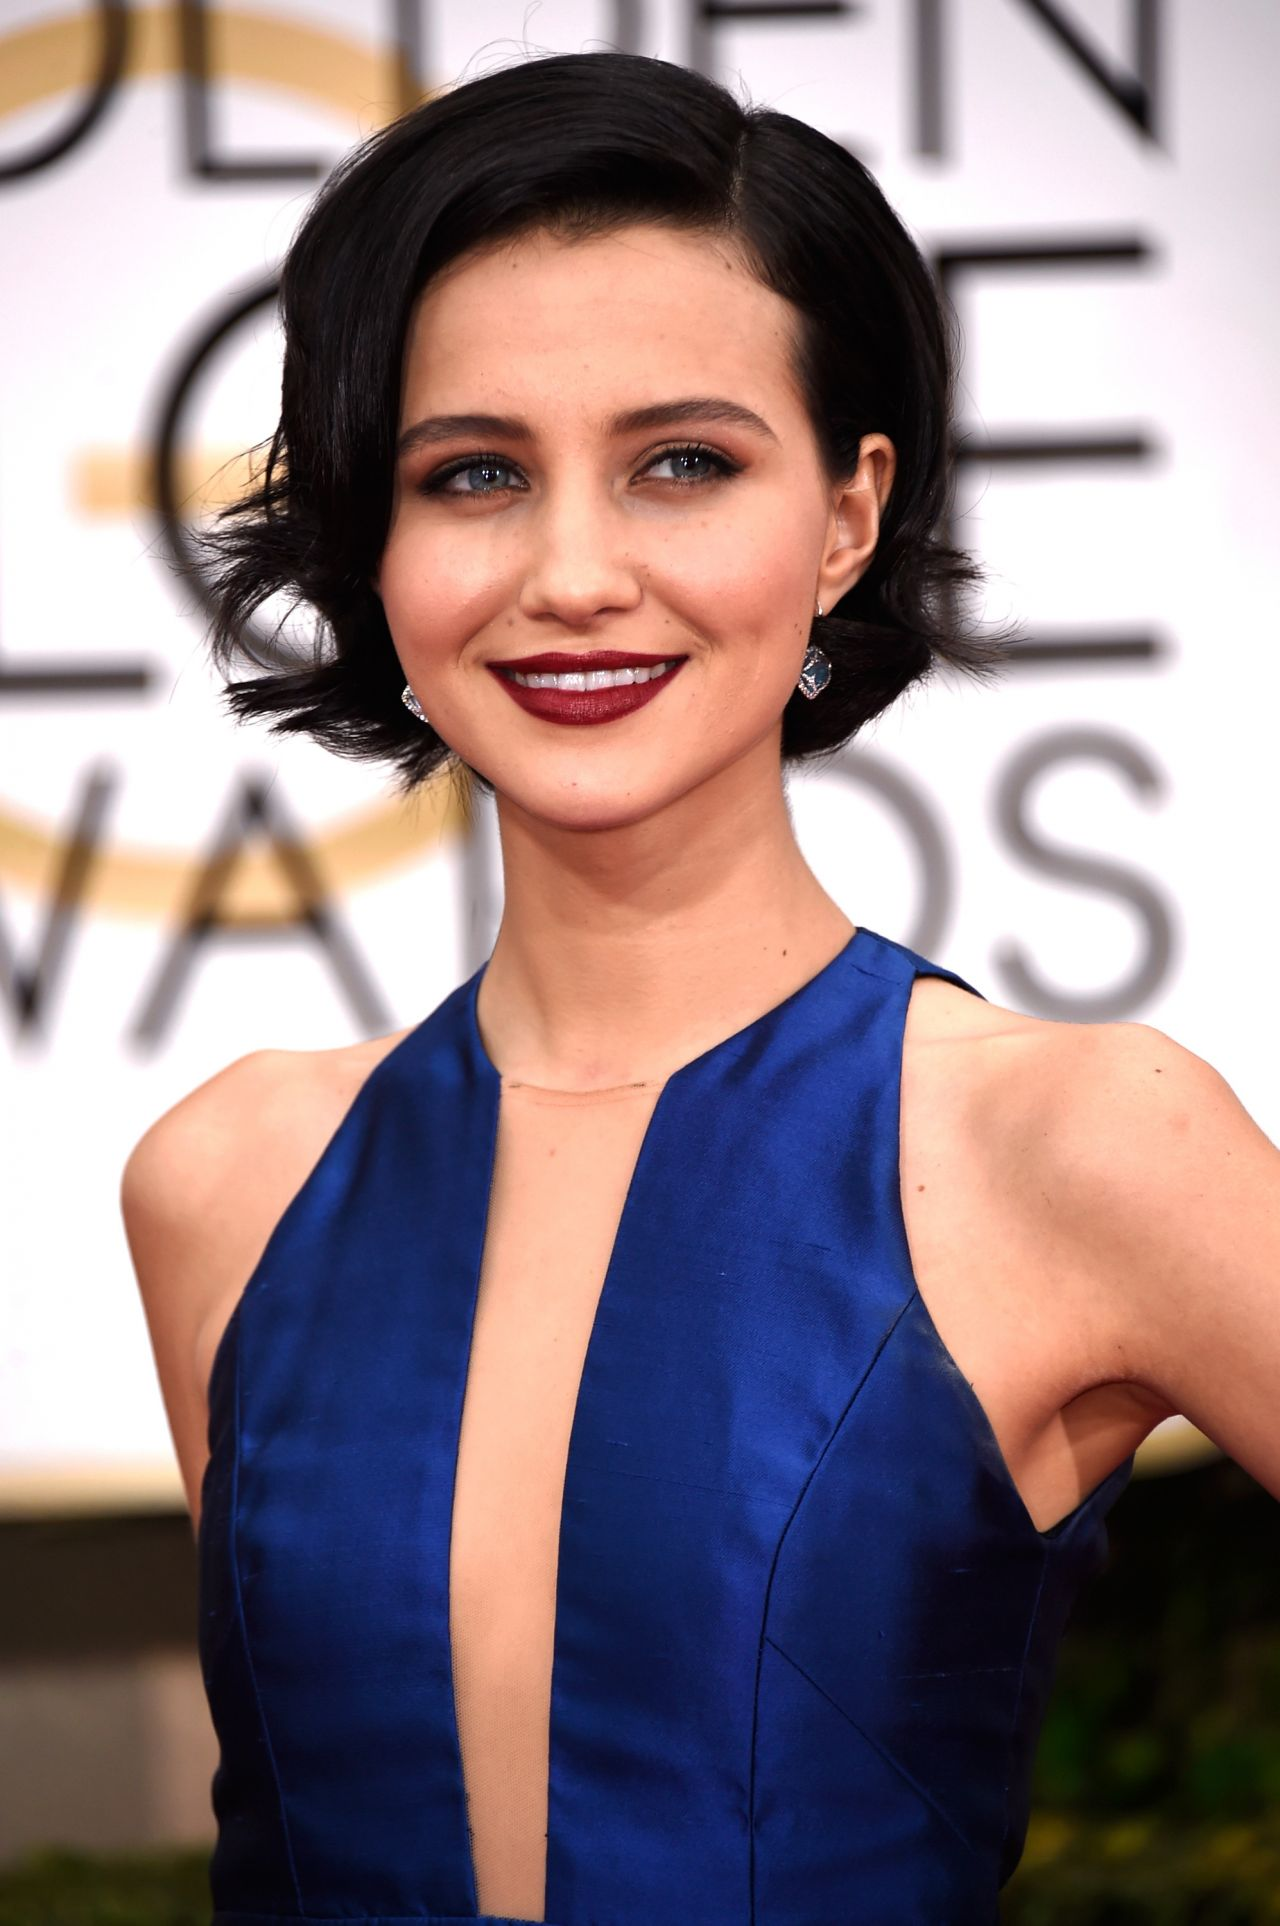 julia goldani telles gilmorejulia goldani telles instagram, julia goldani telles gilmore, julia goldani telles tumblr, julia goldani telles facebook, julia goldani telles hot, julia goldani telles golden globes, julia goldani telles dancing, julia goldani telles twitter, julia goldani telles boyfriend, julia goldani telles anorexic, julia goldani telles interview, julia goldani telles wikipedia, julia goldani telles imdb, julia goldani telles bunheads